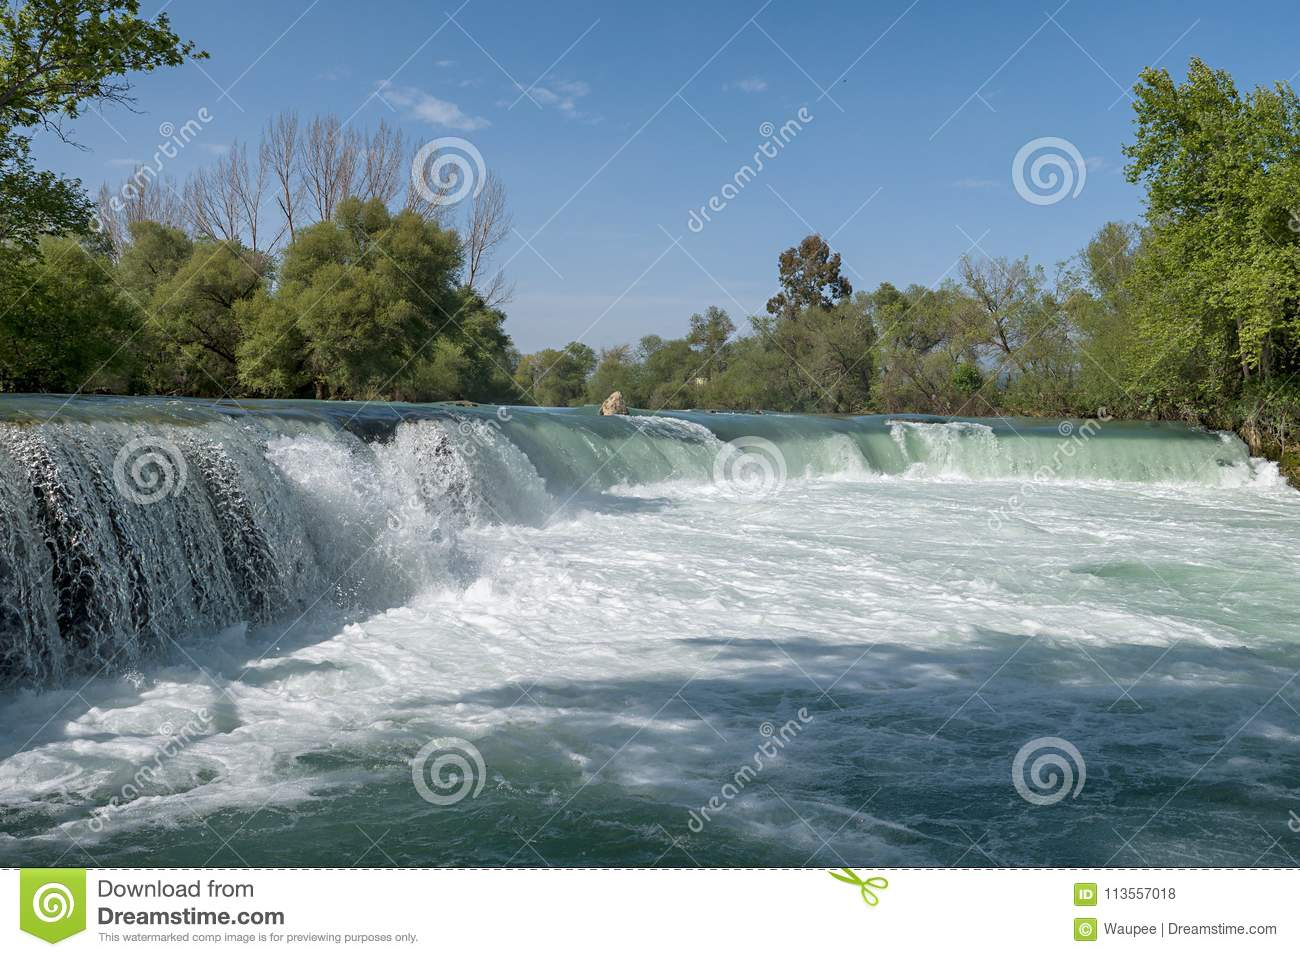 Manavgat Falls in Turkey: photos, how to get there 83